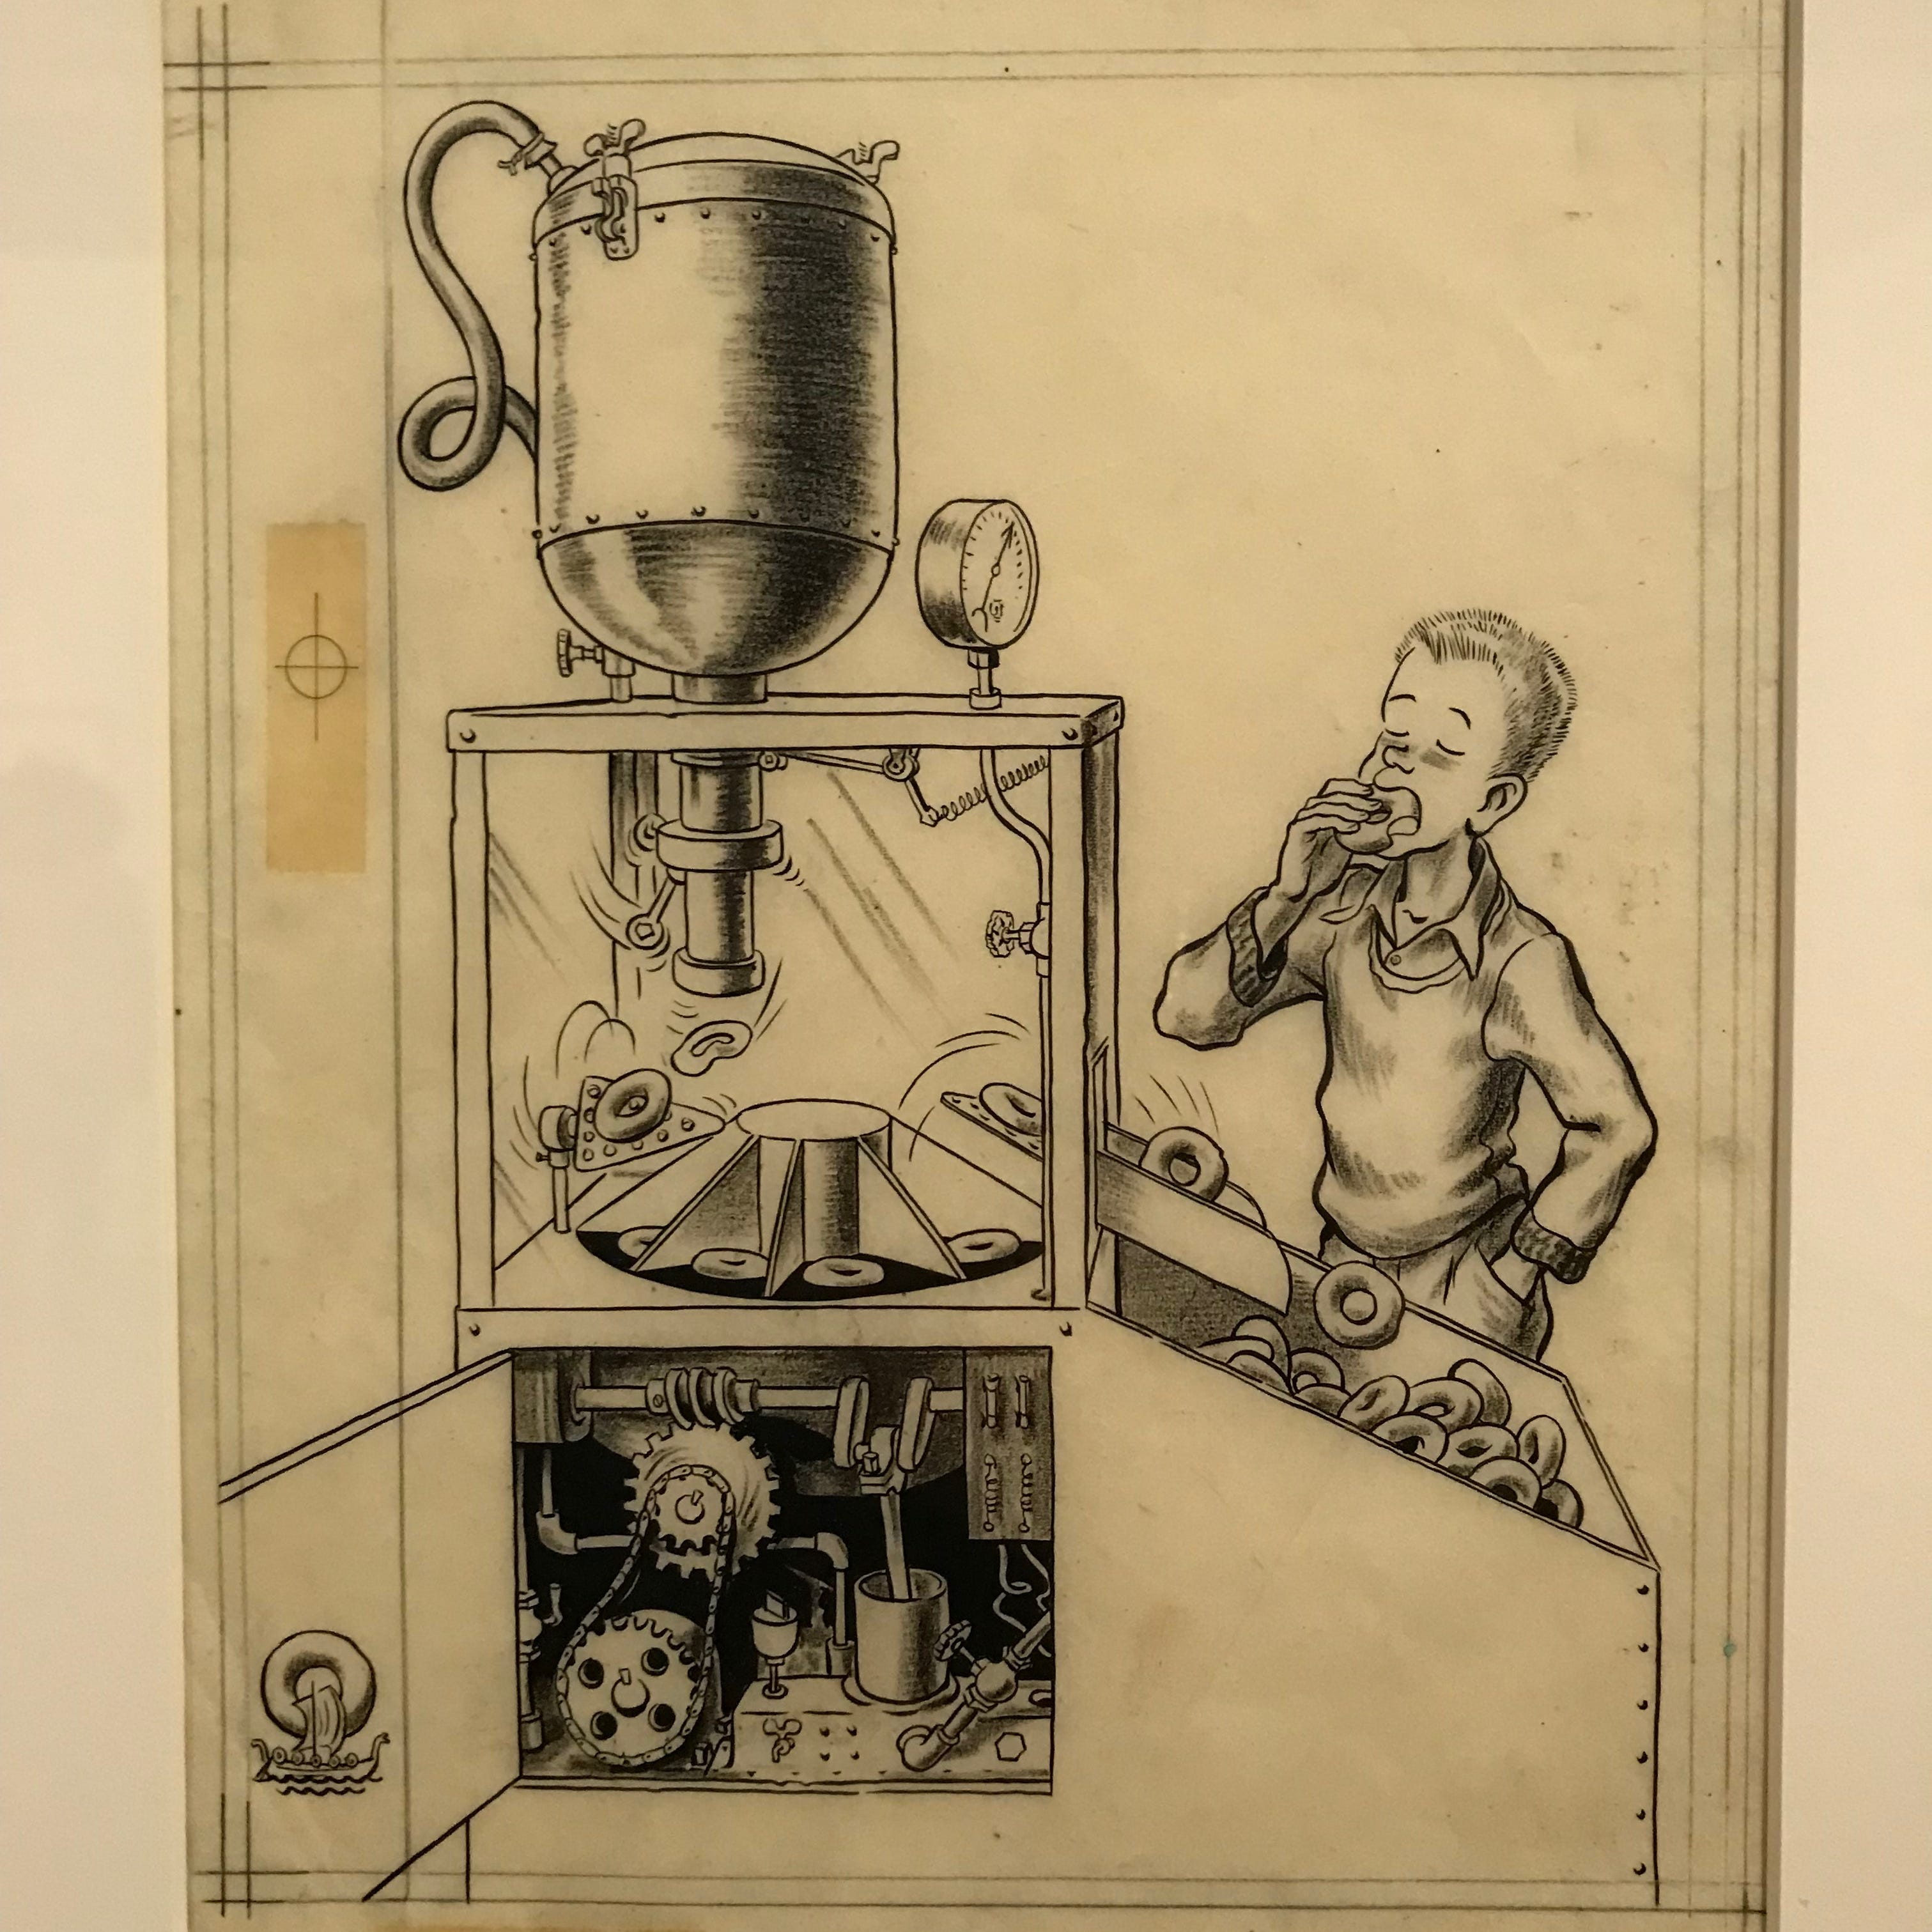 Our history: Robert McCloskey's 'Ducklings' illustrations at art museum